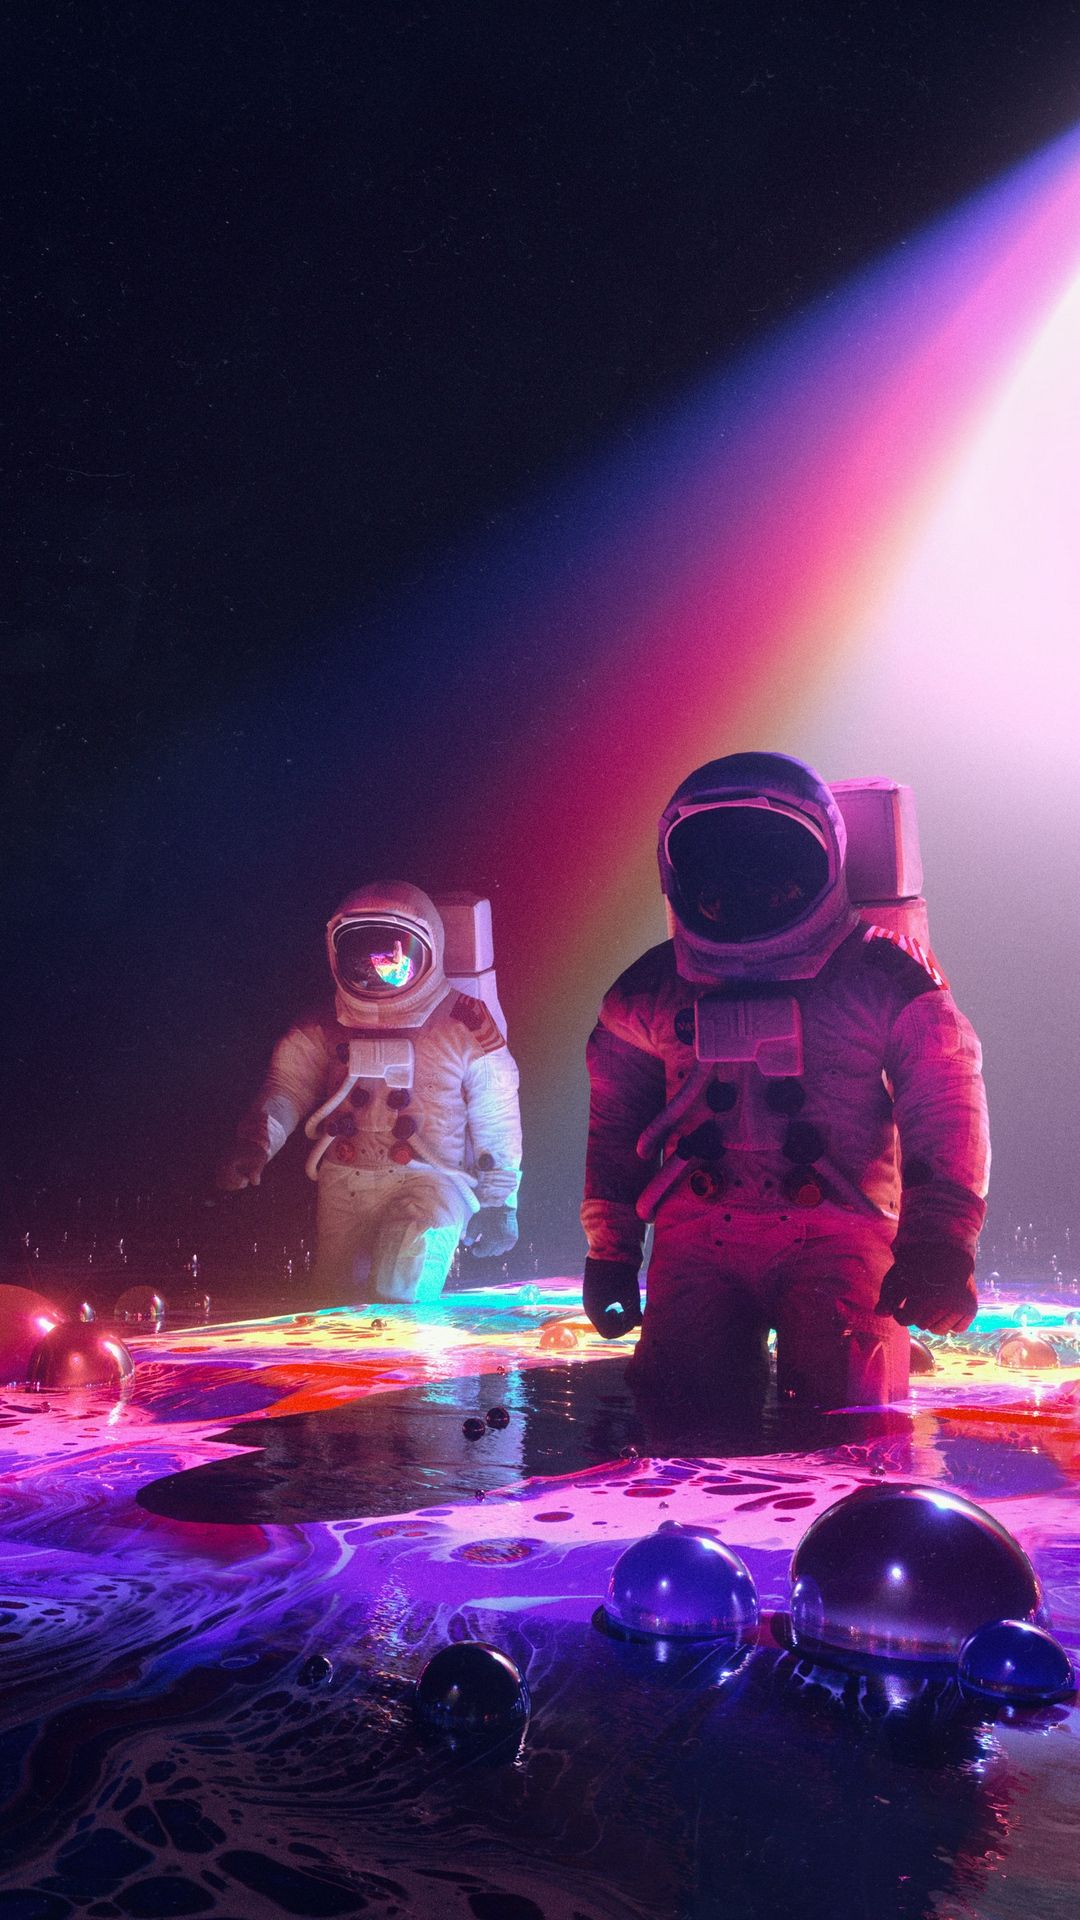 Astronaut Space Wallpaper Download In 2020 Space Phone Wallpaper Wallpaper Space